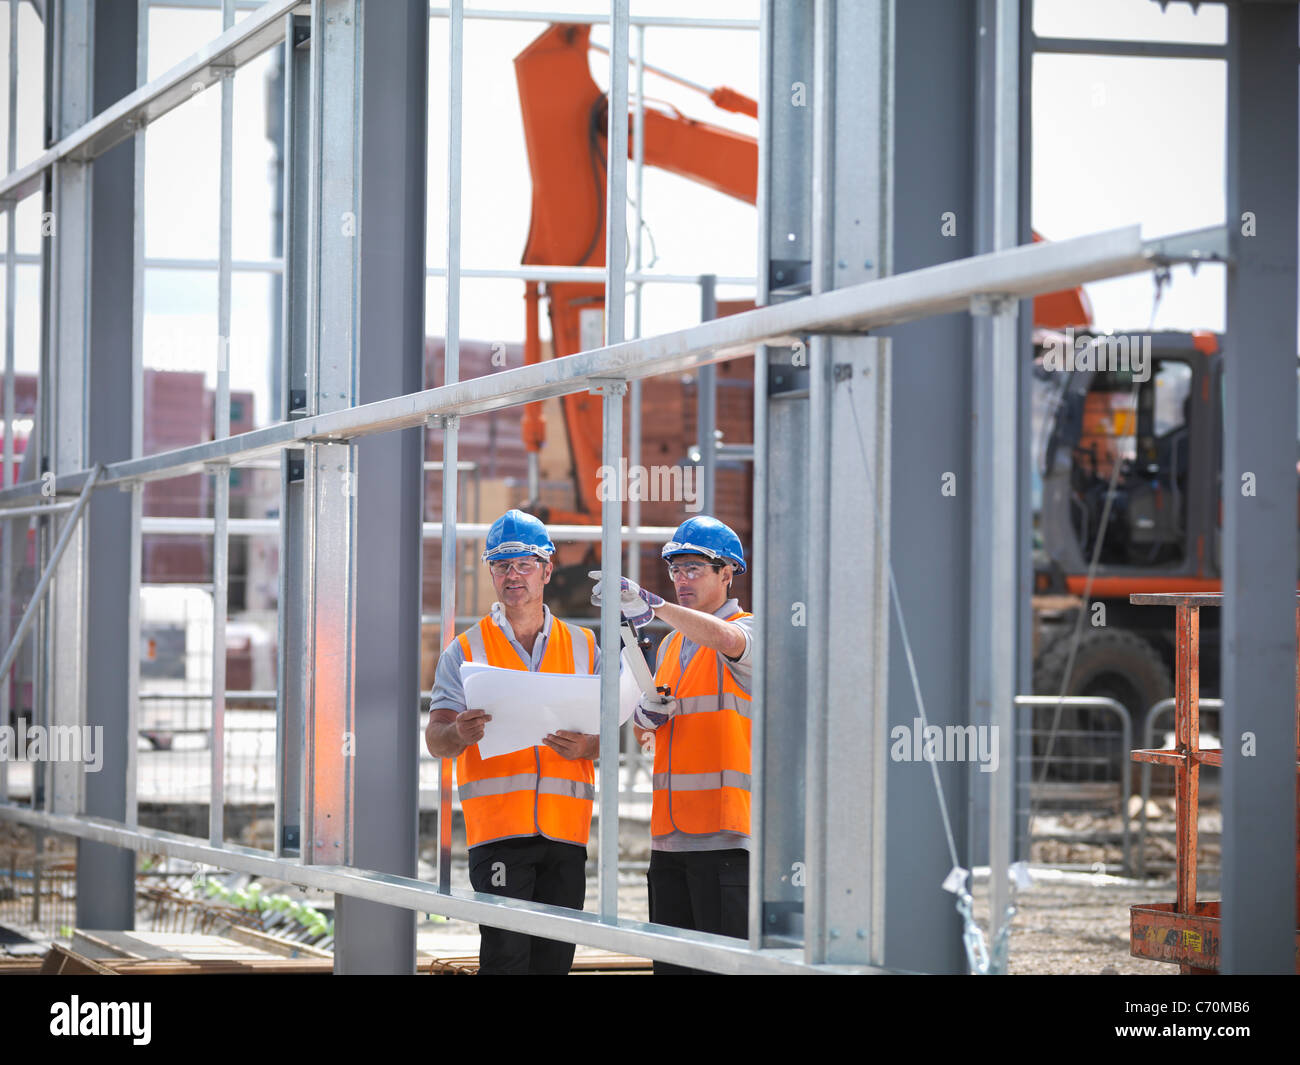 Construction Drawing Stockfotos & Construction Drawing Bilder - Alamy